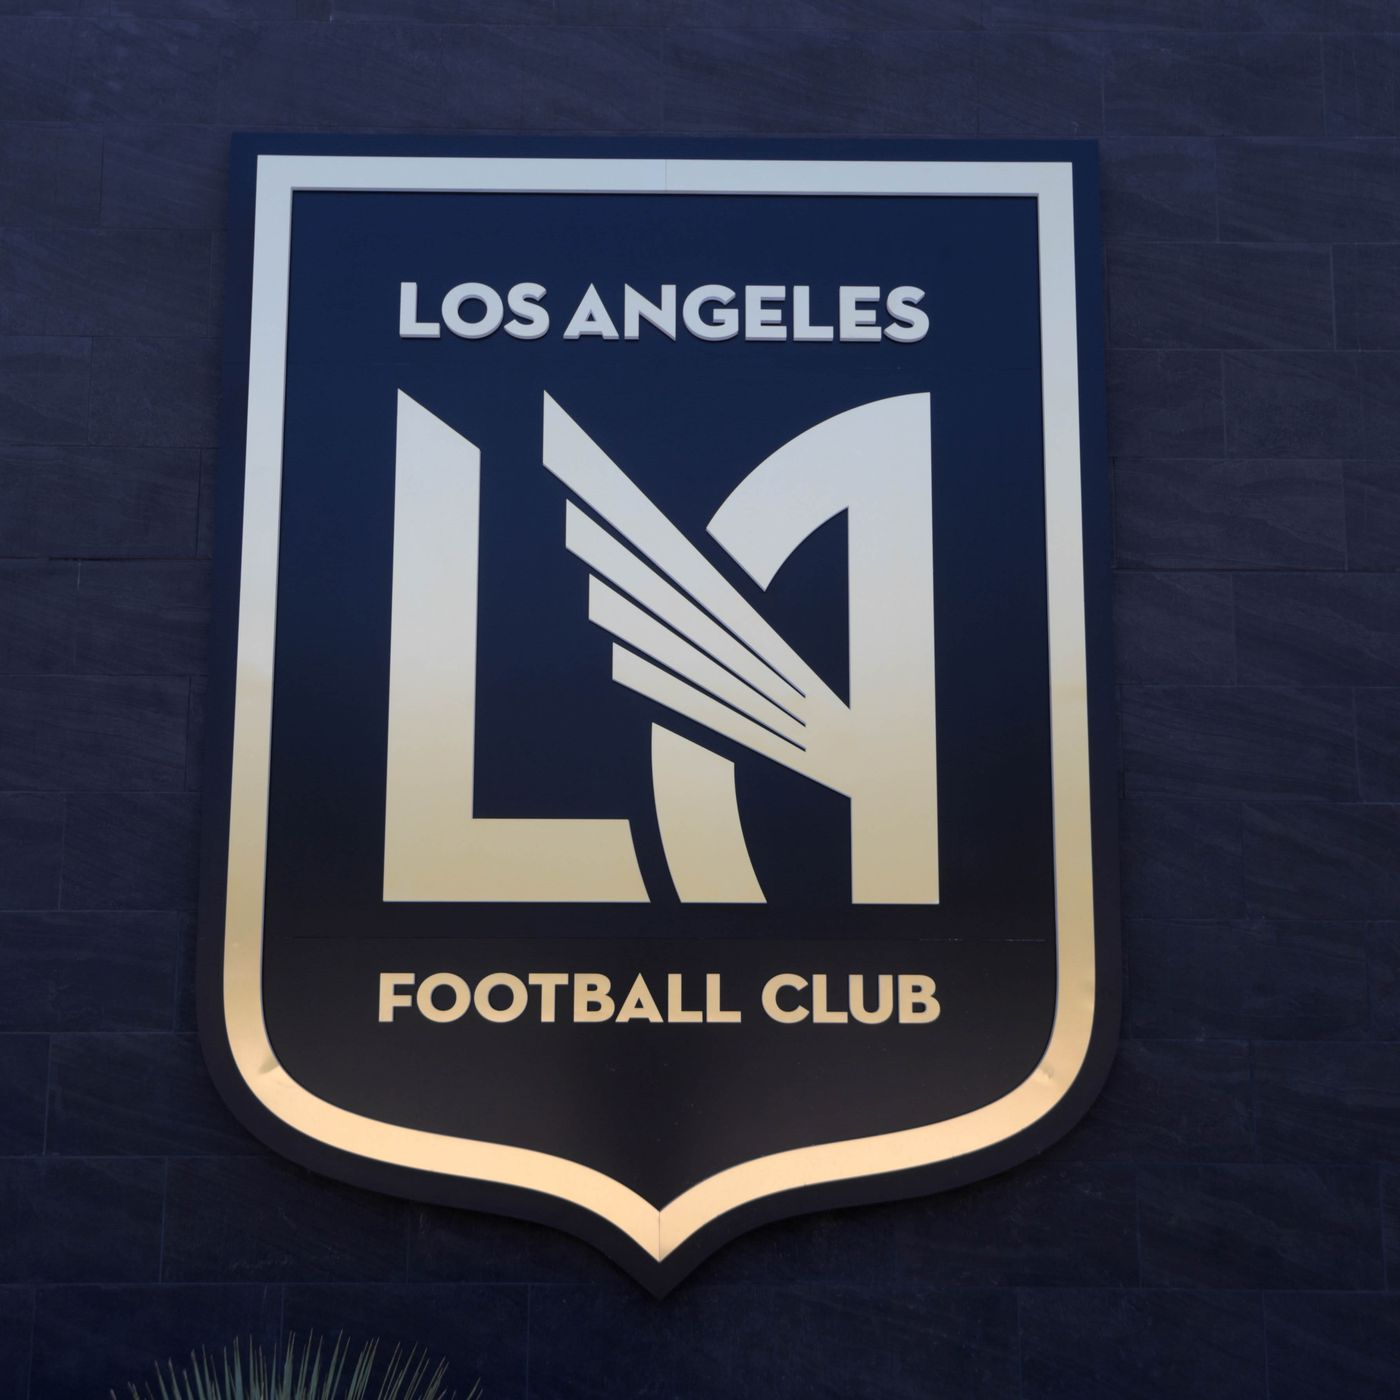 Lafc The 3252 Post Statement Following Fan Violence At La Galaxy